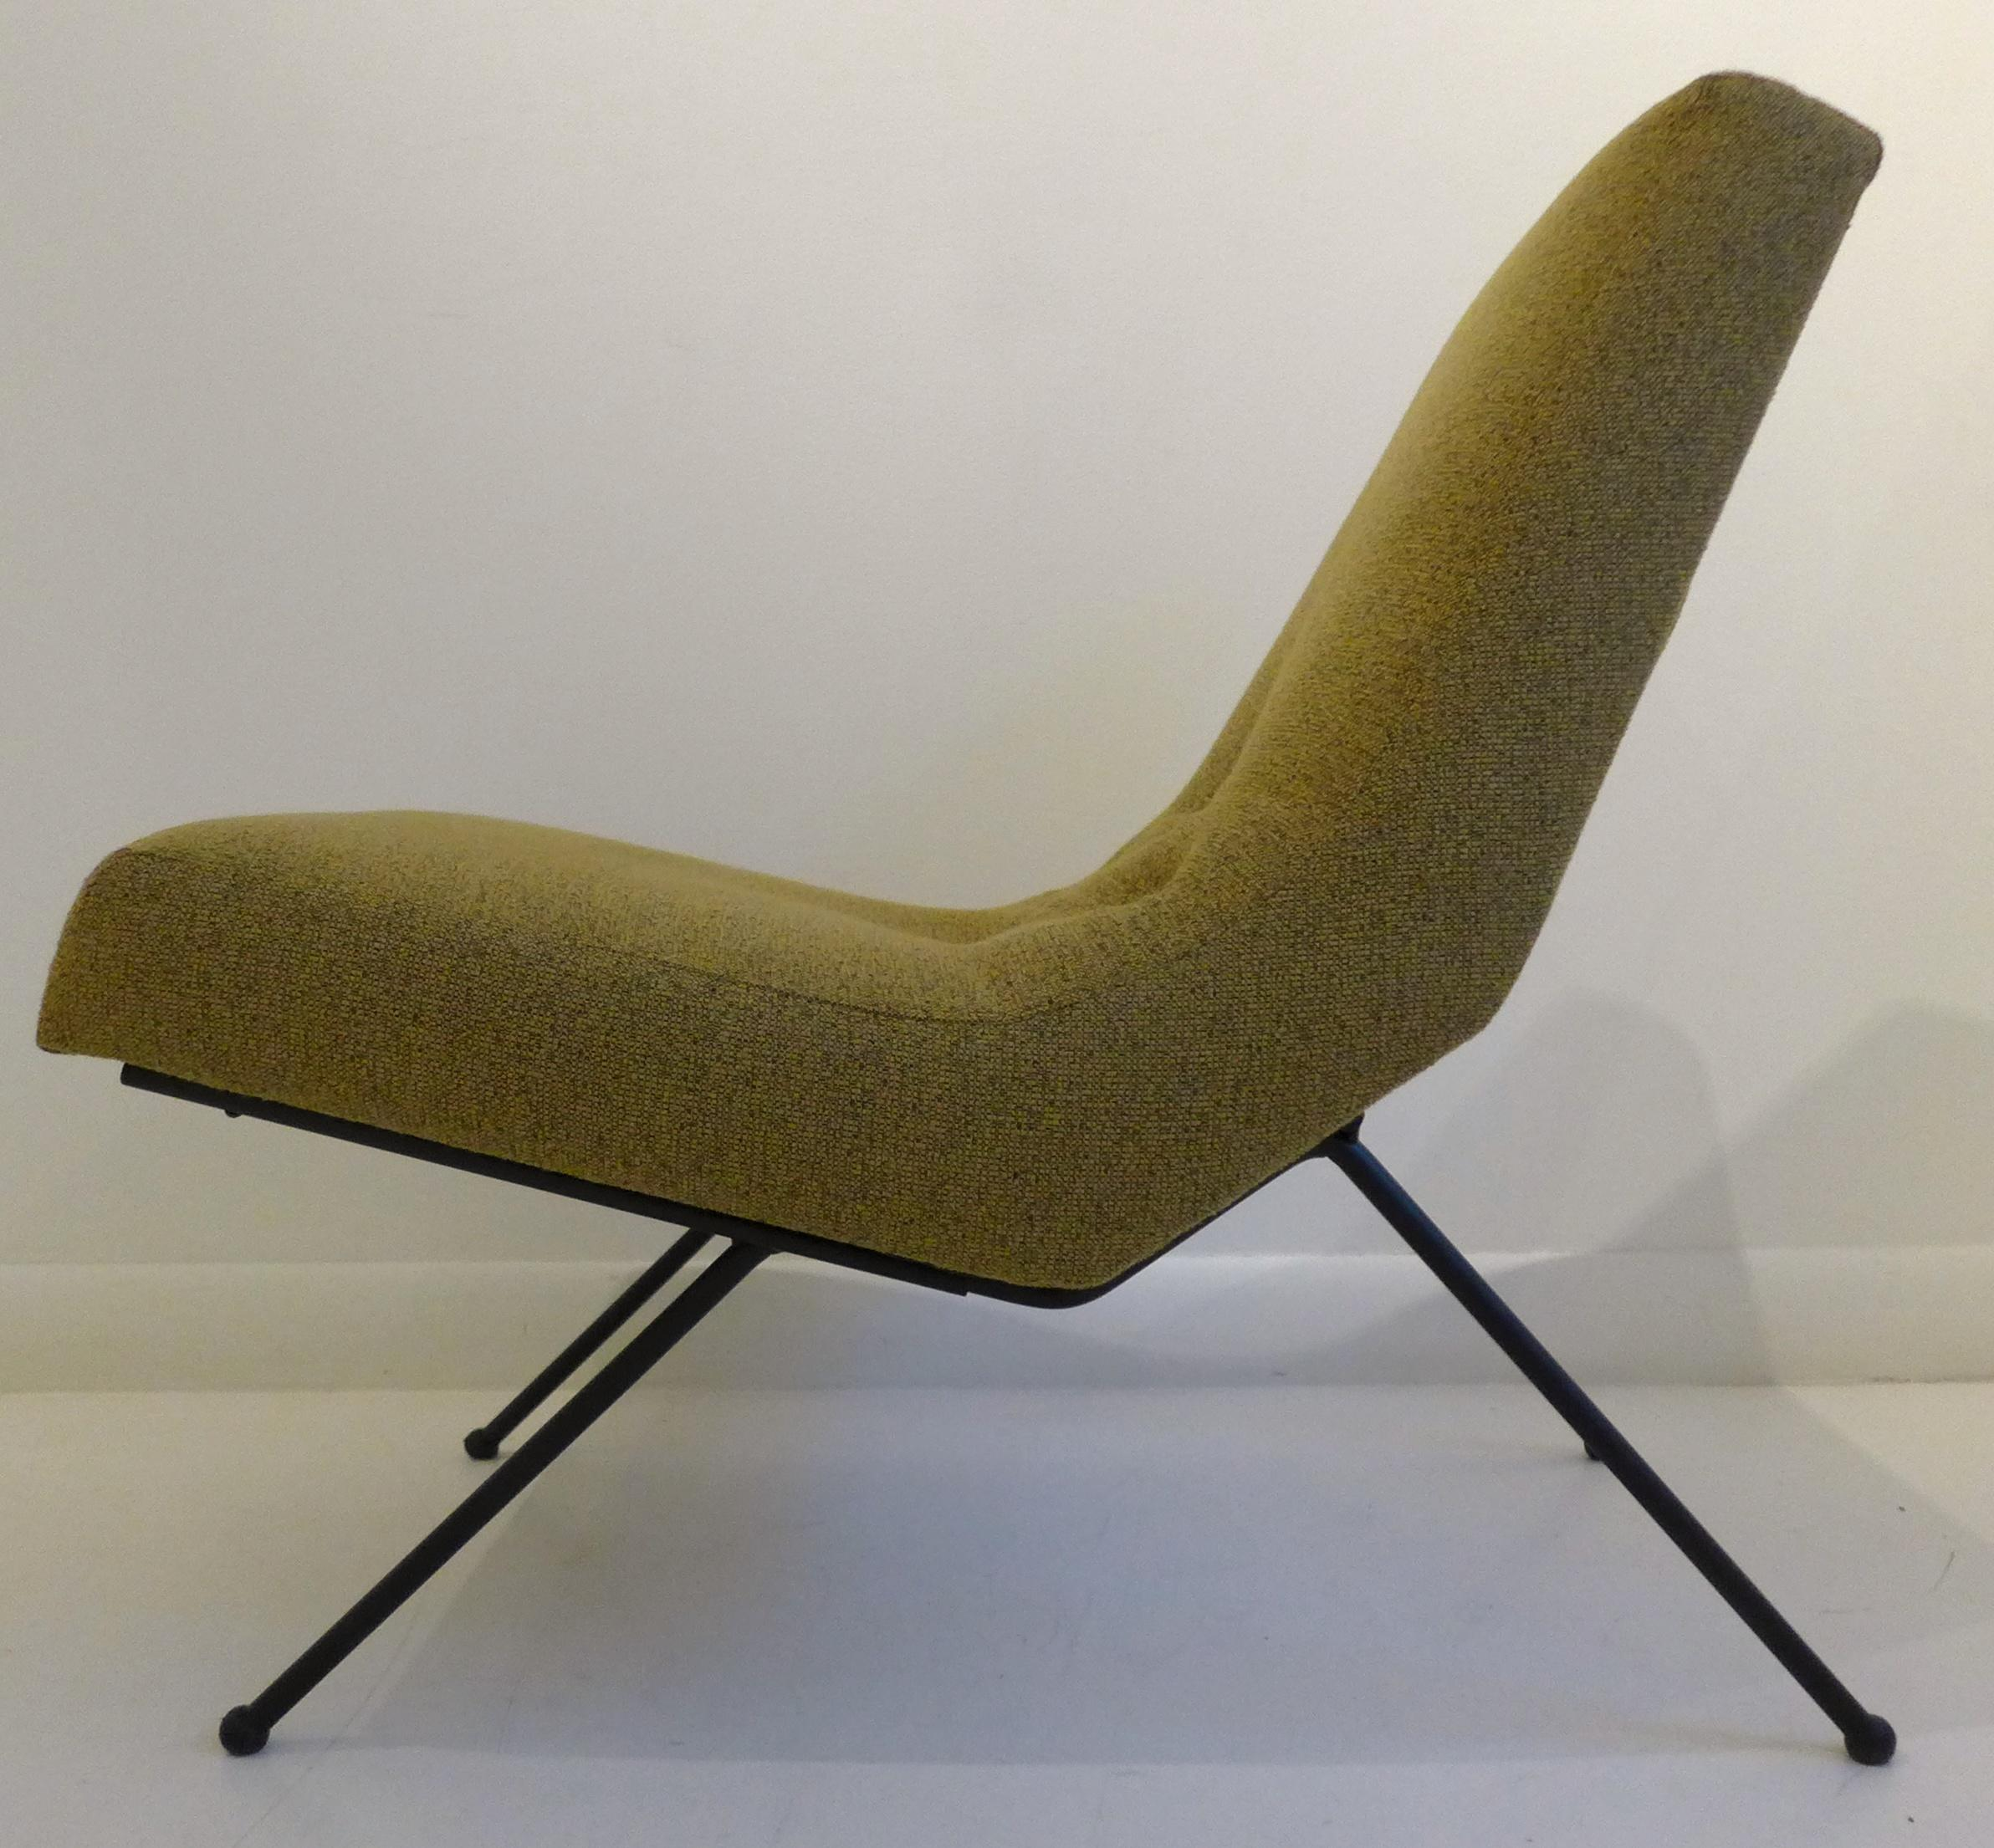 Genial Lounge Chair With Ottoman By Adrian Pearsall   Image 4 Of 8